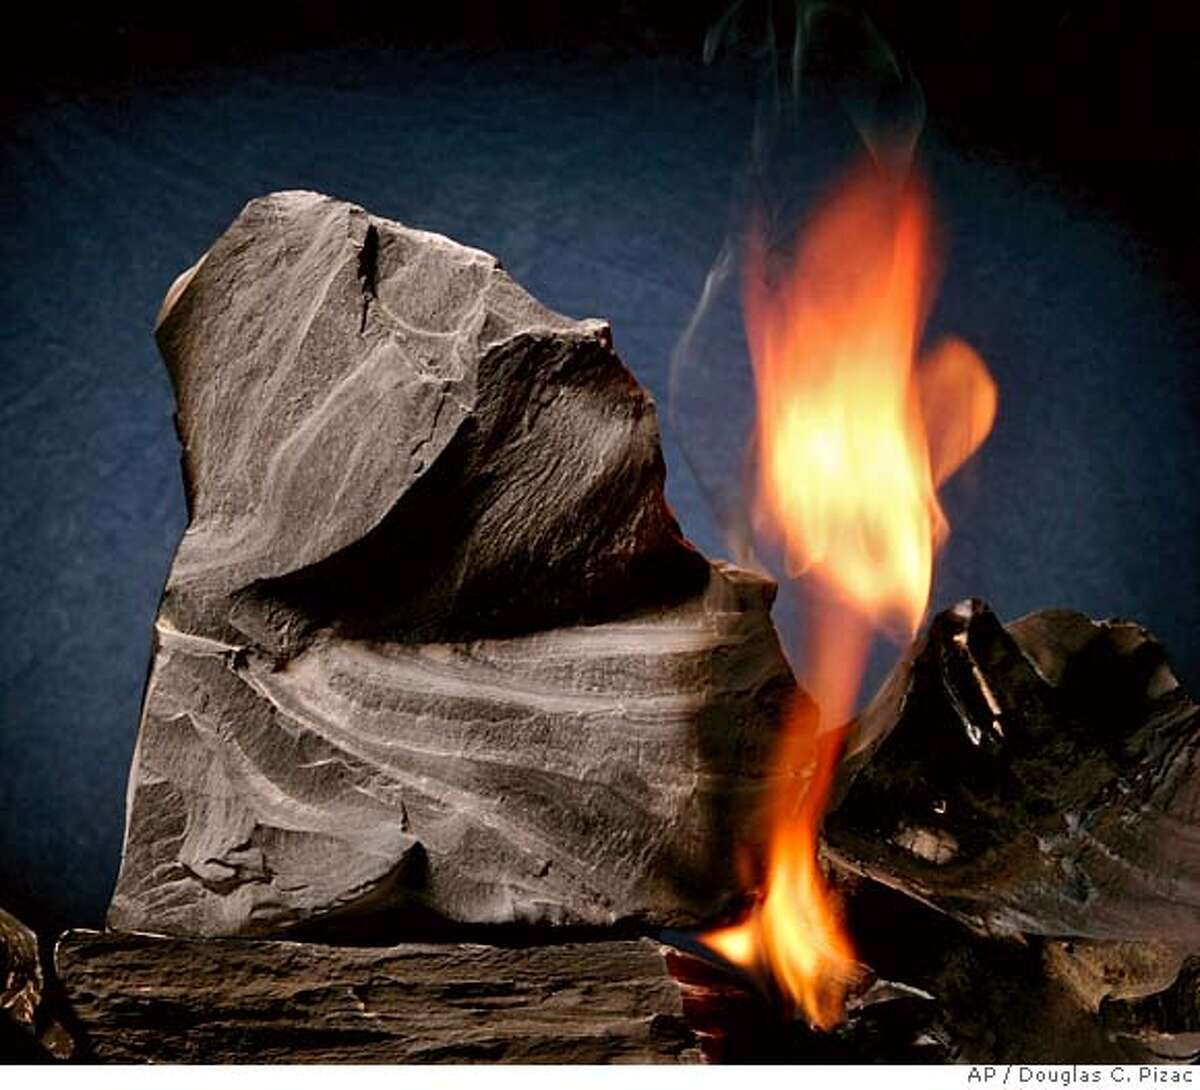 Oil shale rock burns on its own once lit with a blow torch Monday, Aug. 15, 2005, in Sandy, Utah. Oil shale is rock containing deposits of oil. Companies have spent years researching how to melt oil from the rock. (AP Photo/Douglas C. Pizac)